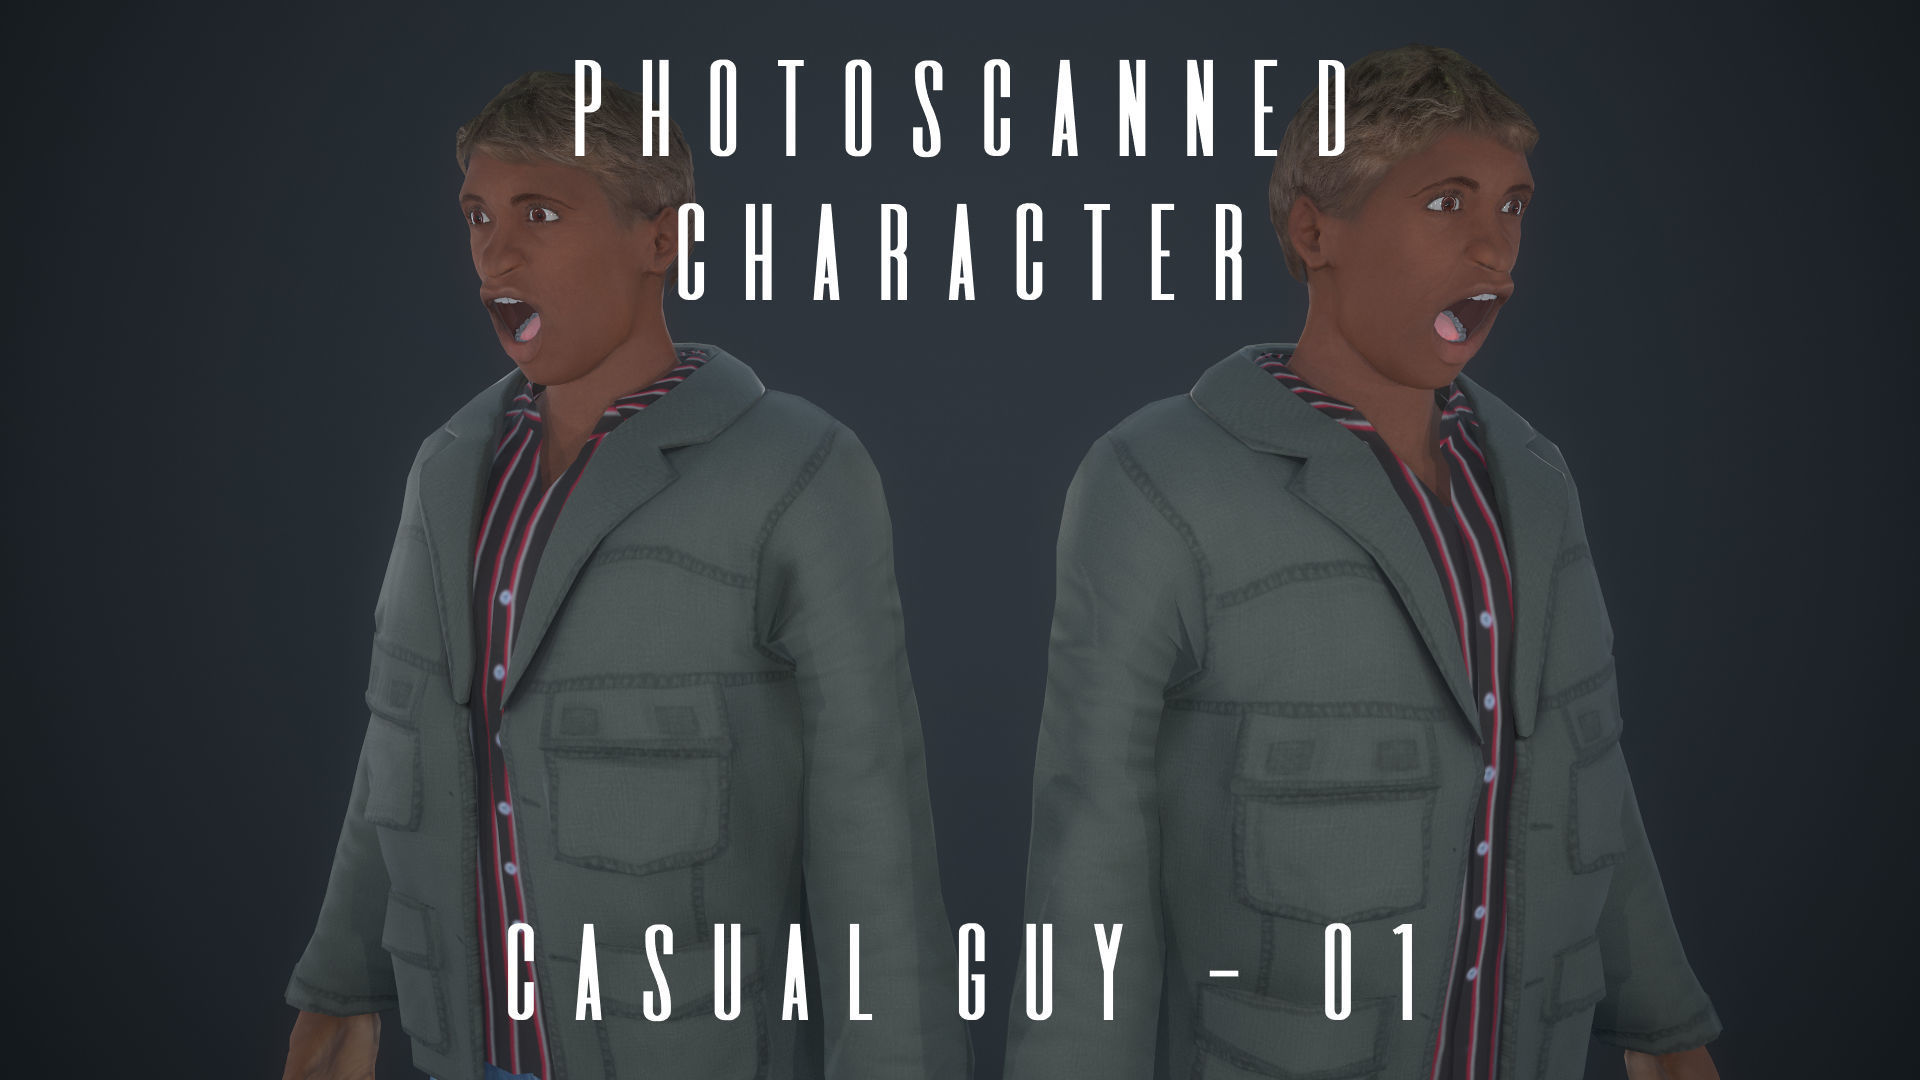 Photoscanned Character - Casual Guy 01